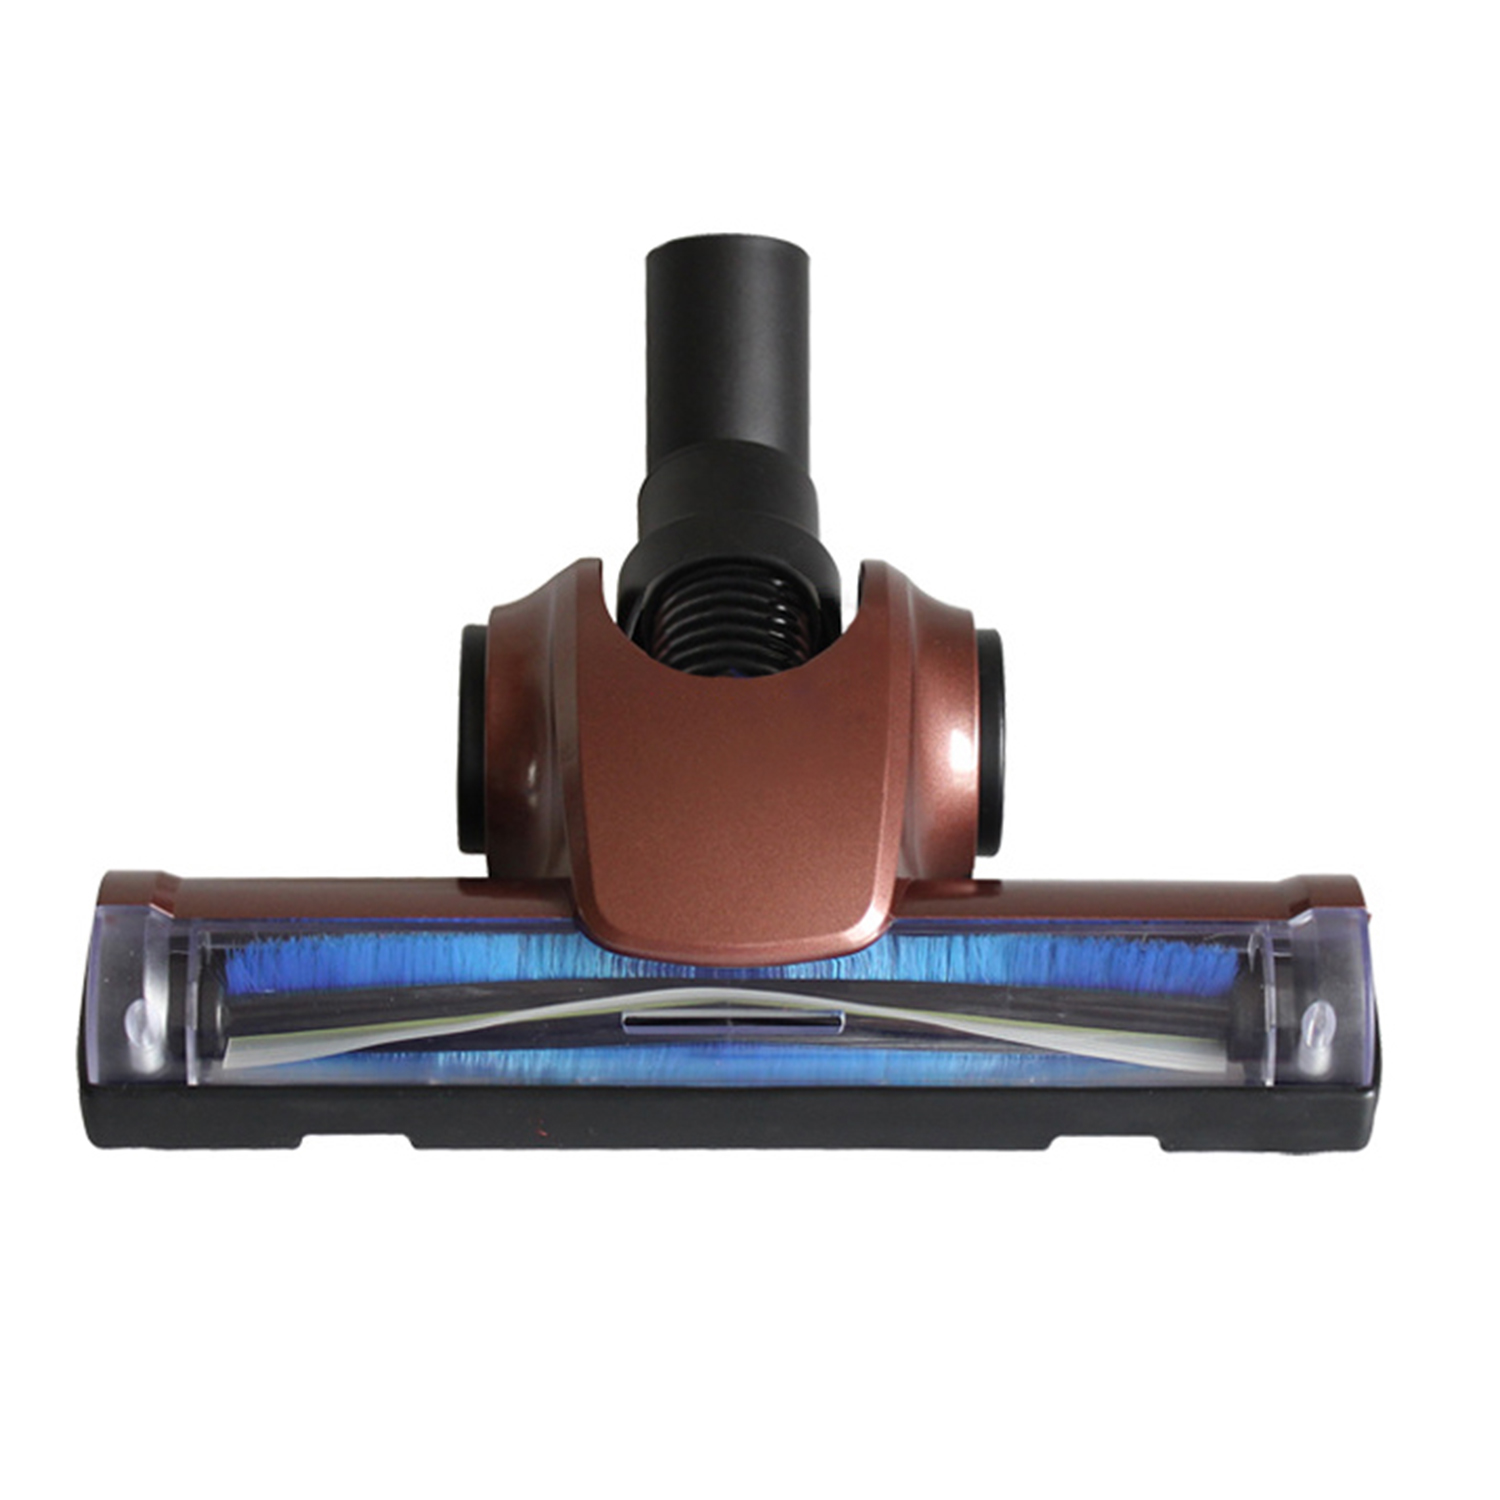 SDFC-32mm New European Version Vacuum Cleaner Accessories For Efficient Air Brush The Floor Carpet Efficient Cleaning